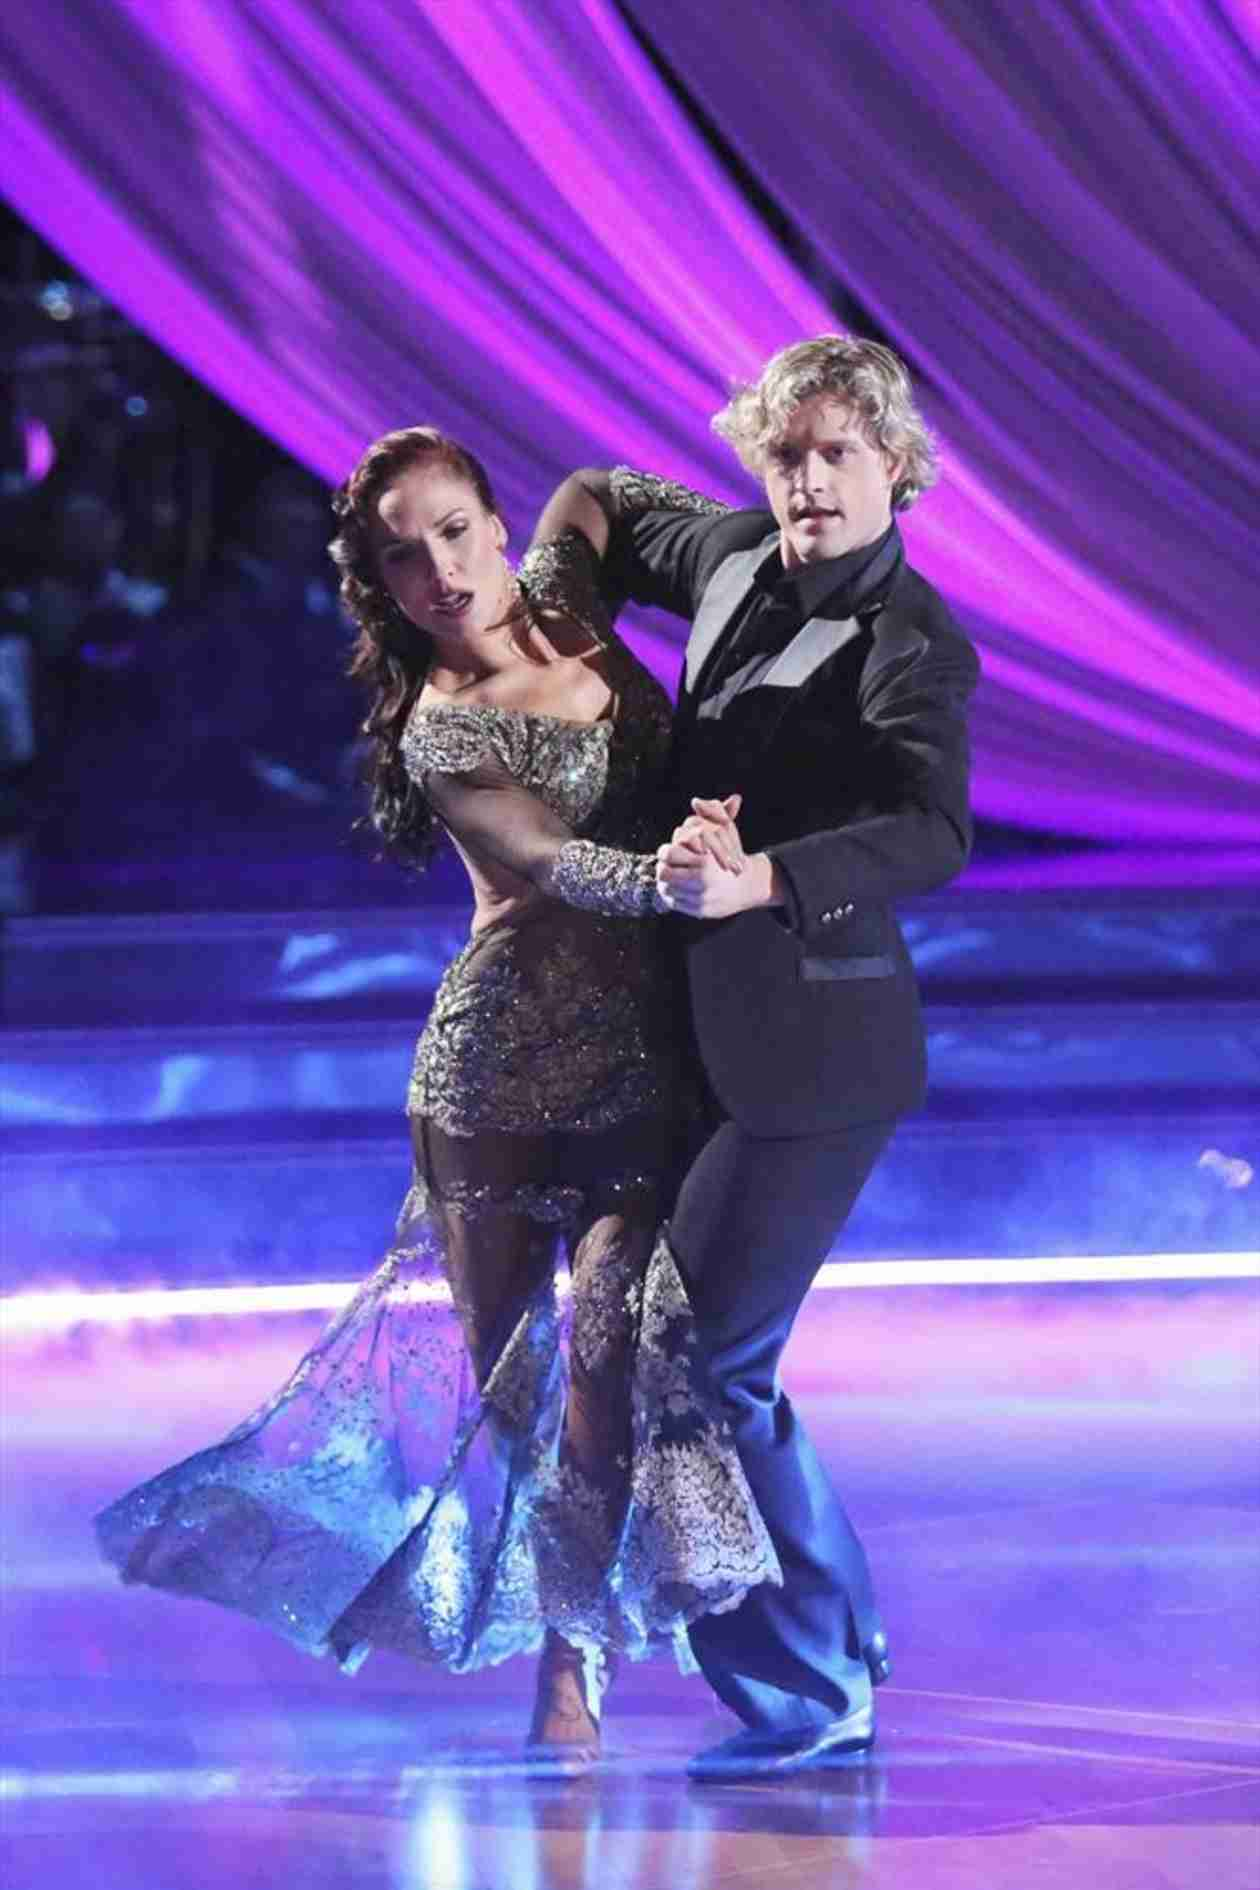 Dancing With the Stars 2014: Charlie White and Sharna Burgess's Week 7 Paso Doble (VIDEO)